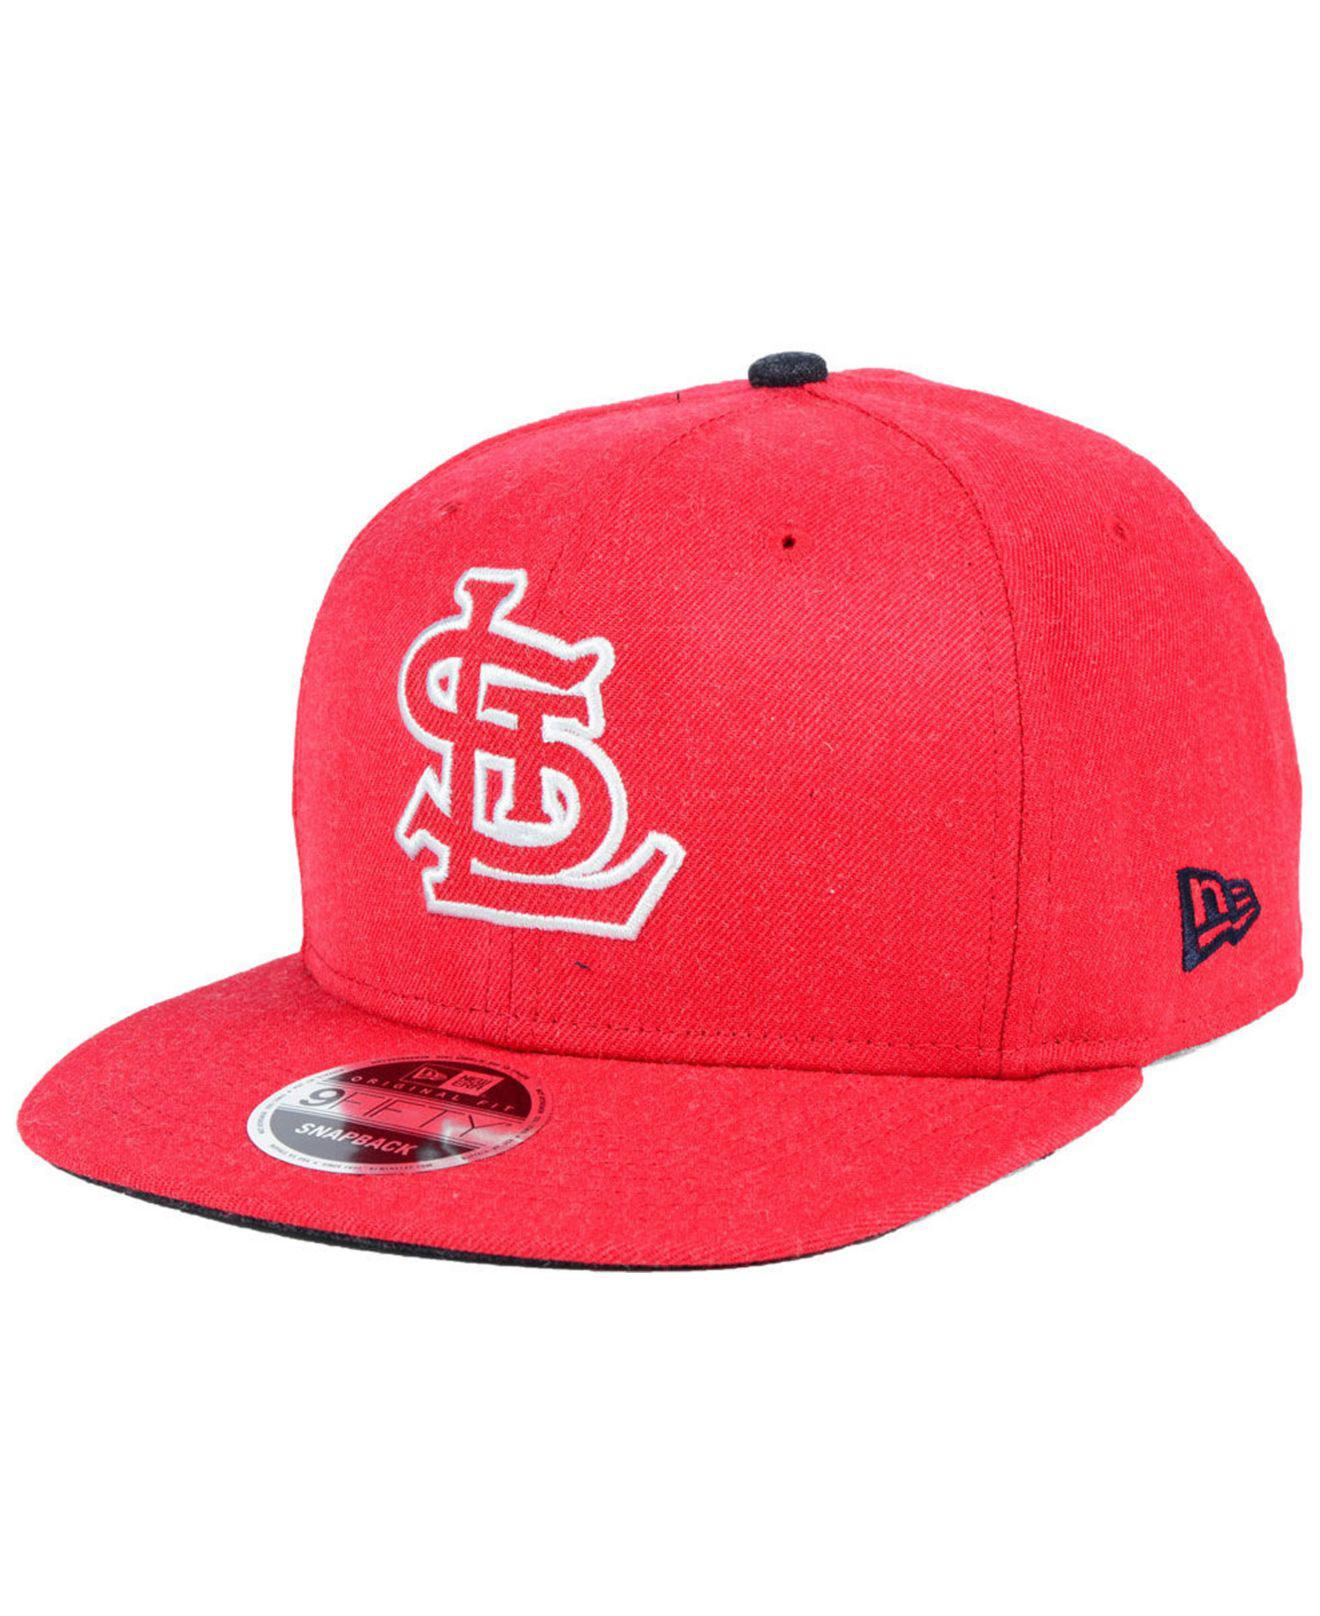 new products 13e0c 4b262 Lyst - KTZ St. Louis Cardinals Heather Hype 9fifty Snapback Cap in ...